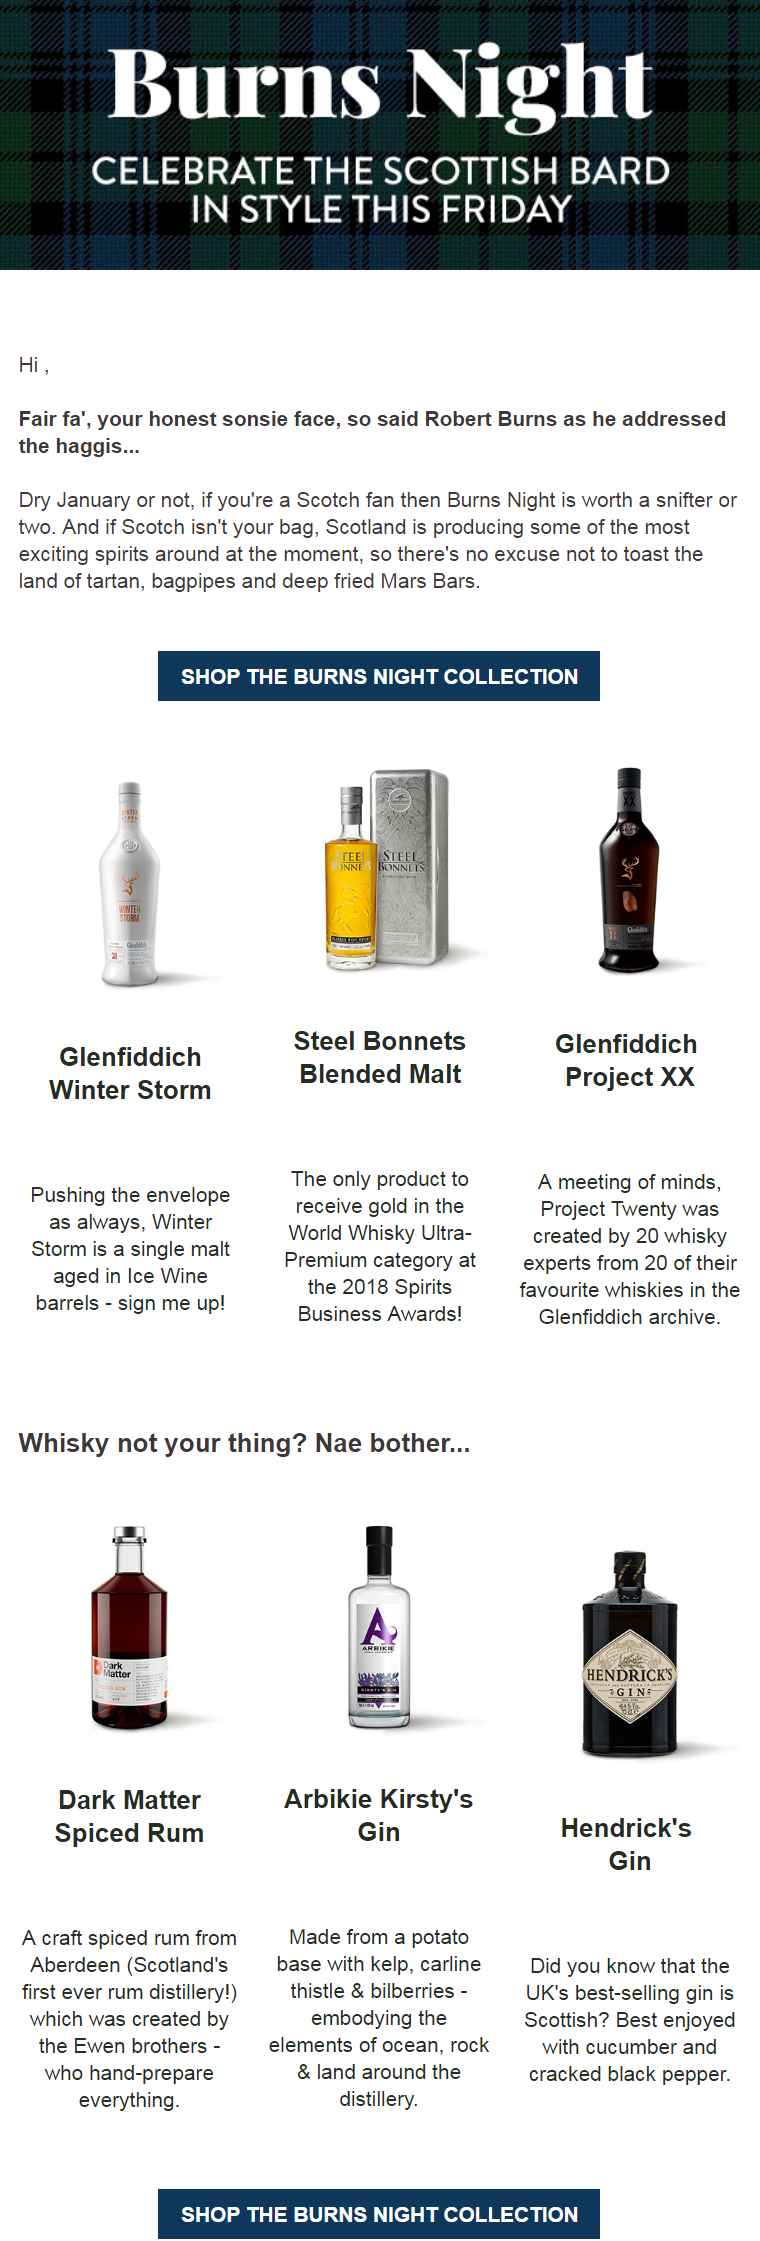 Dry or not, if you're a Scotch fan then Burns Night is worth a snifter or two. And if Scotch isn't y...